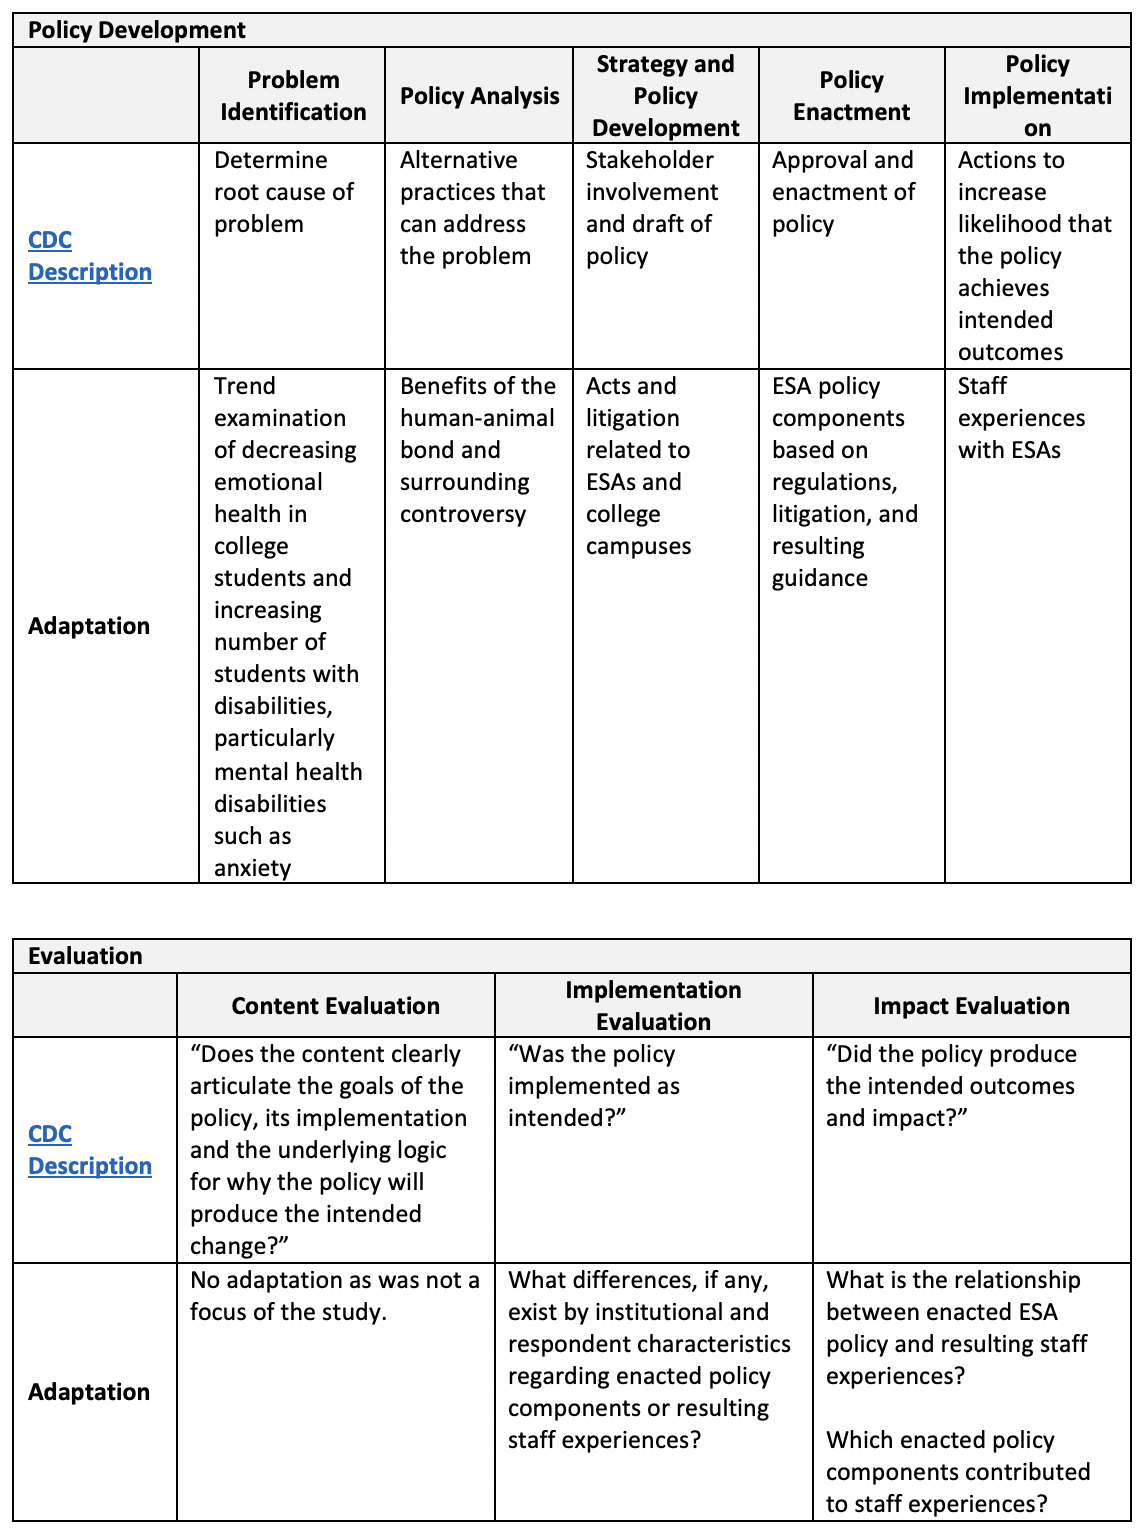 Table where the author shows how she adapted the CDC description for problem identification, policy analysis, strategy and policy development, policy enactment, and policy implementation,